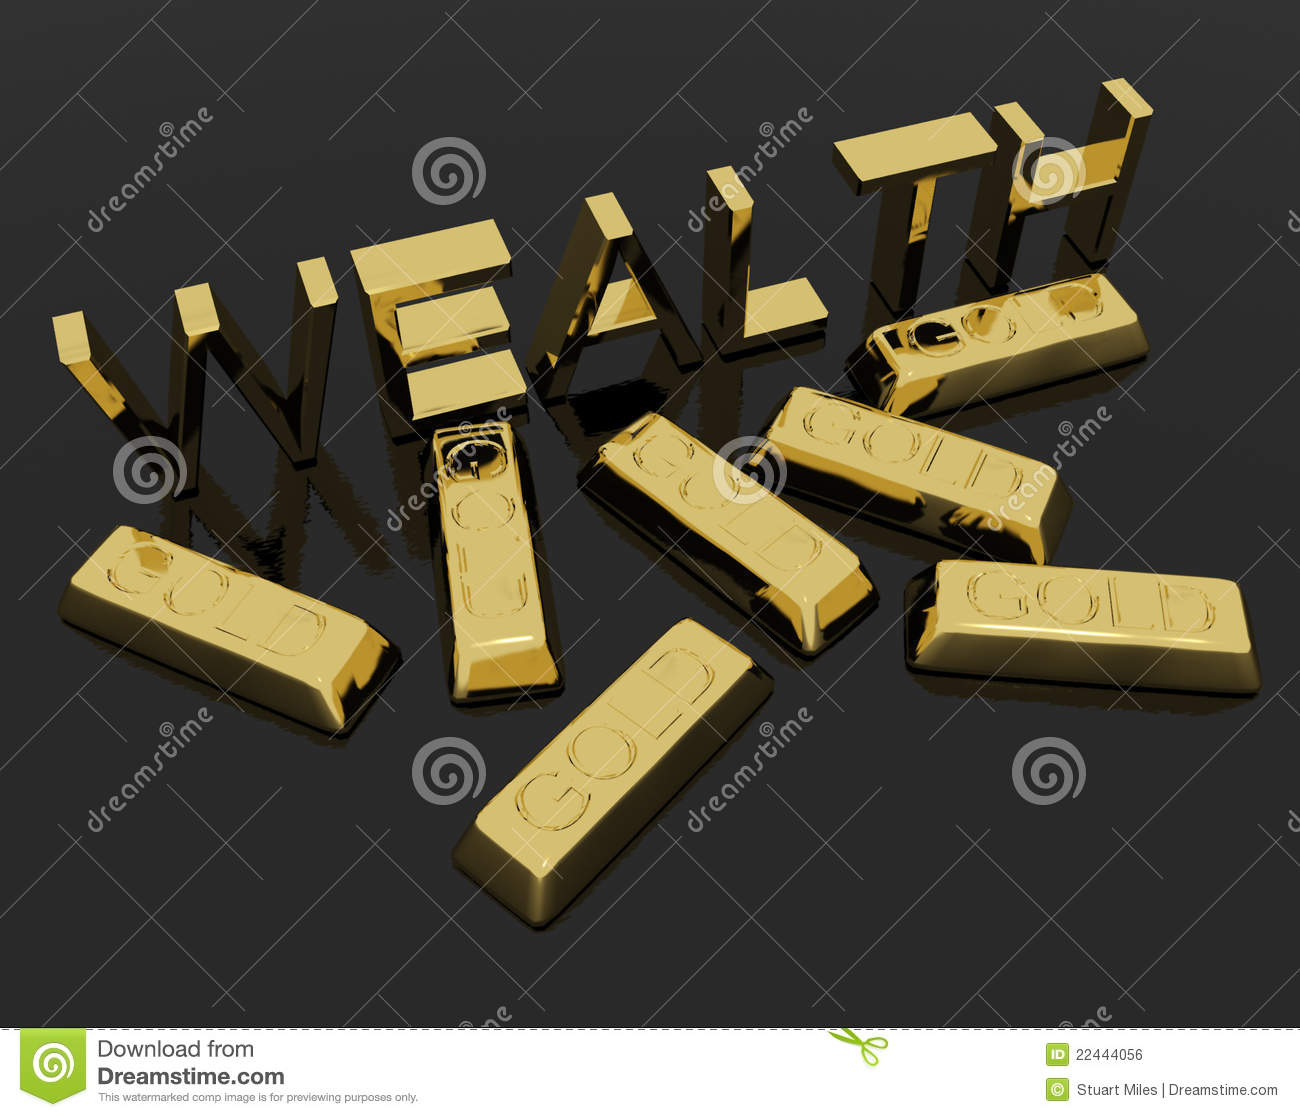 Wealth text and gold bars as symbol of riches stock photo image royalty free stock photo buycottarizona Image collections